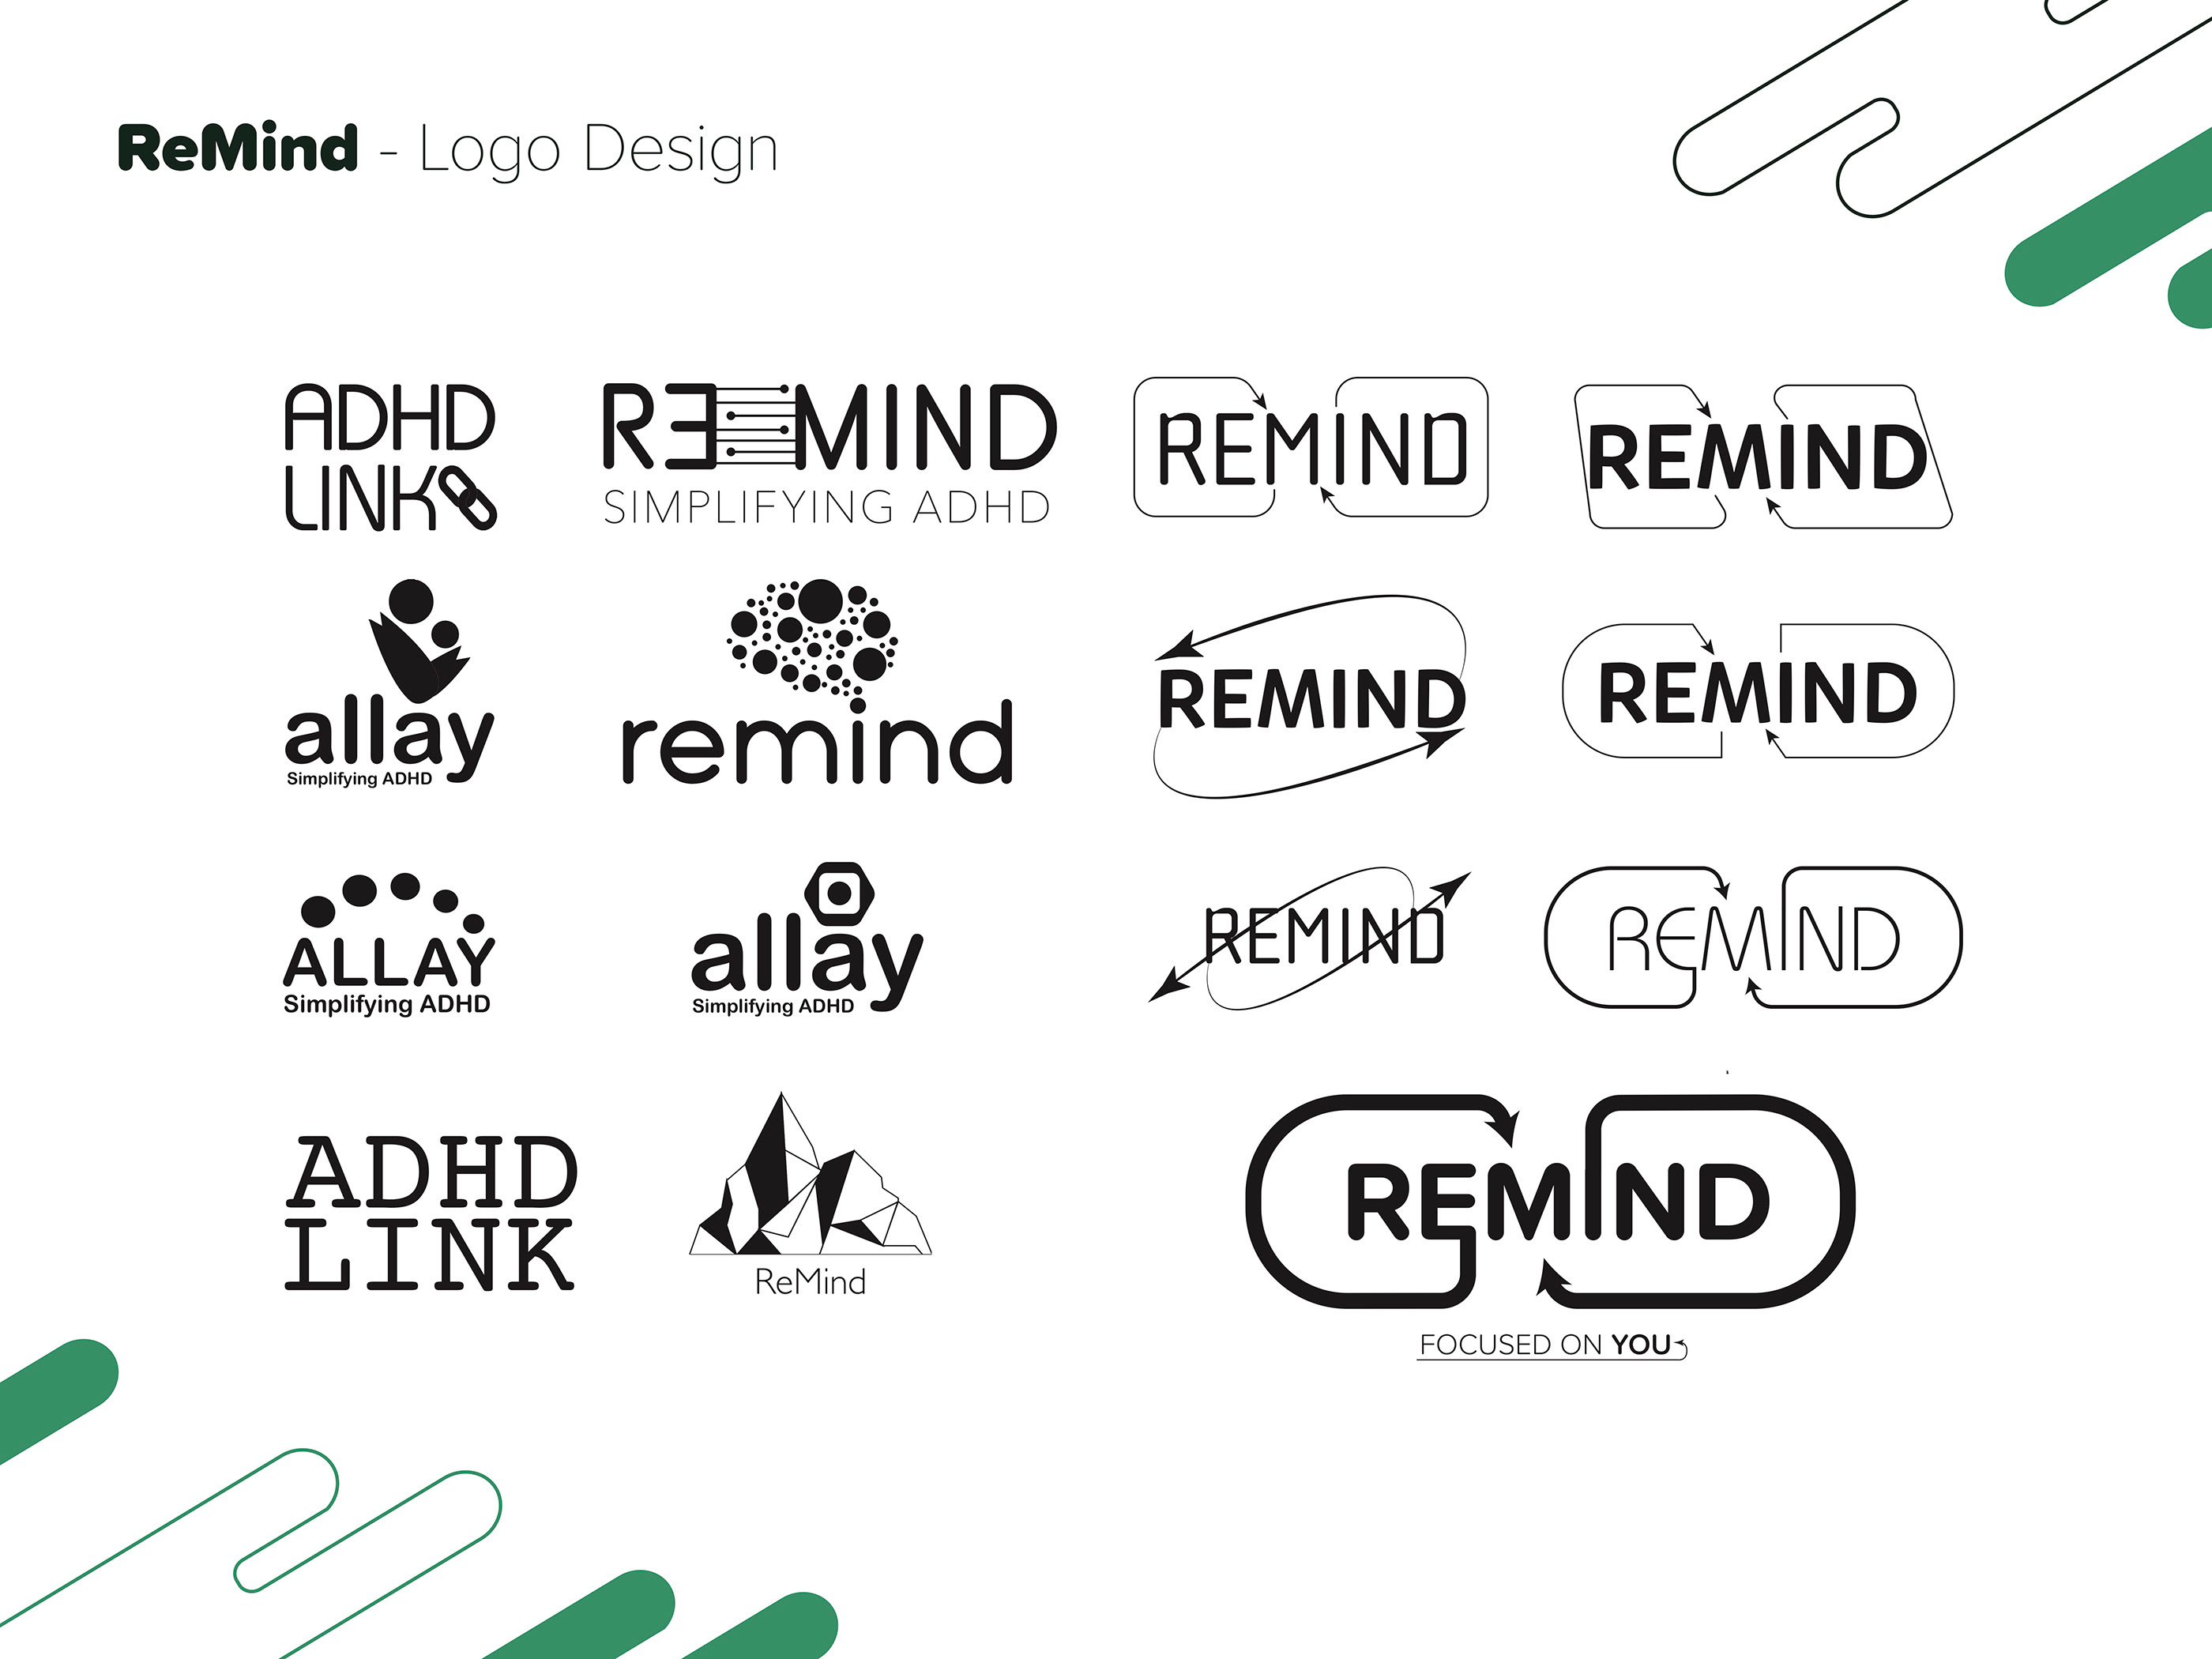 Remind Adhd Awareness Campaign Design For Good Project On Behance